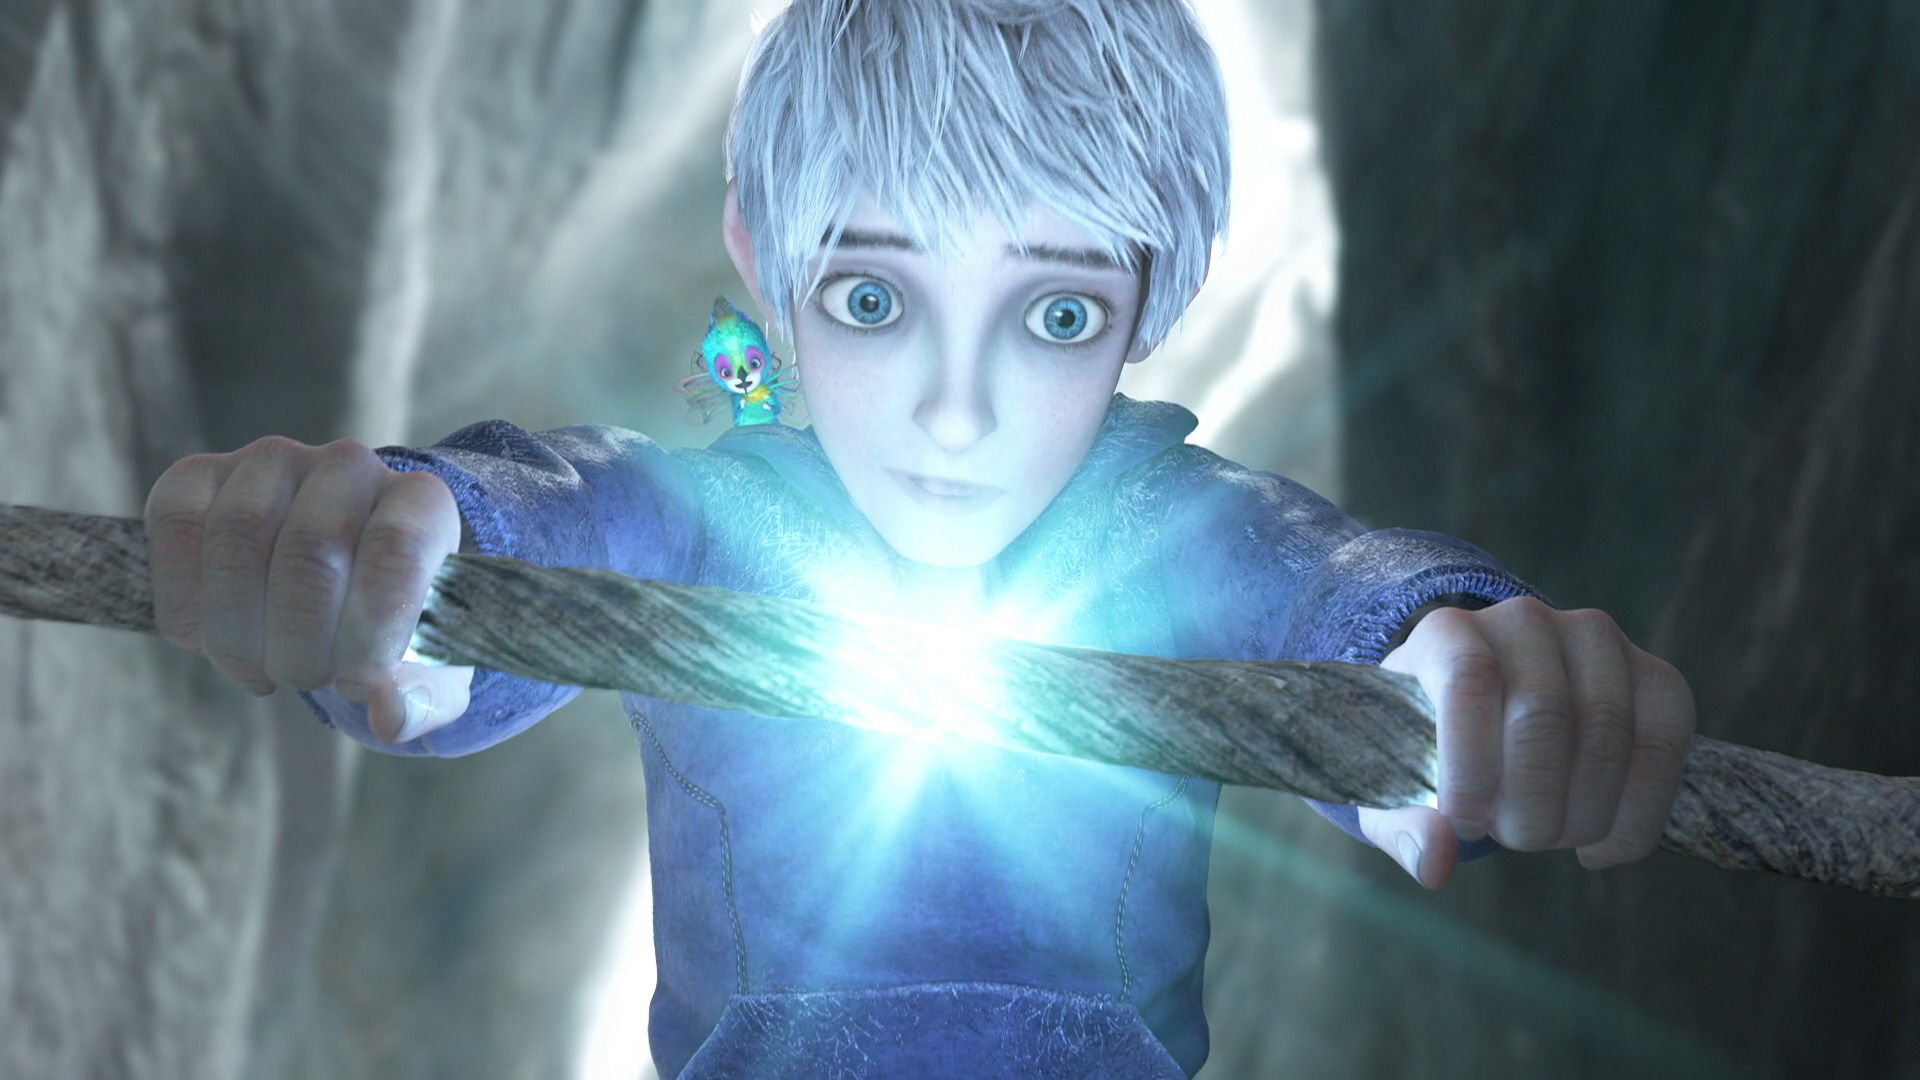 http://images6.fanpop.com/image/photos/34900000/Jack-Frost-HQ-rise-of-the-guardians-34929487-1920-1080.jpg